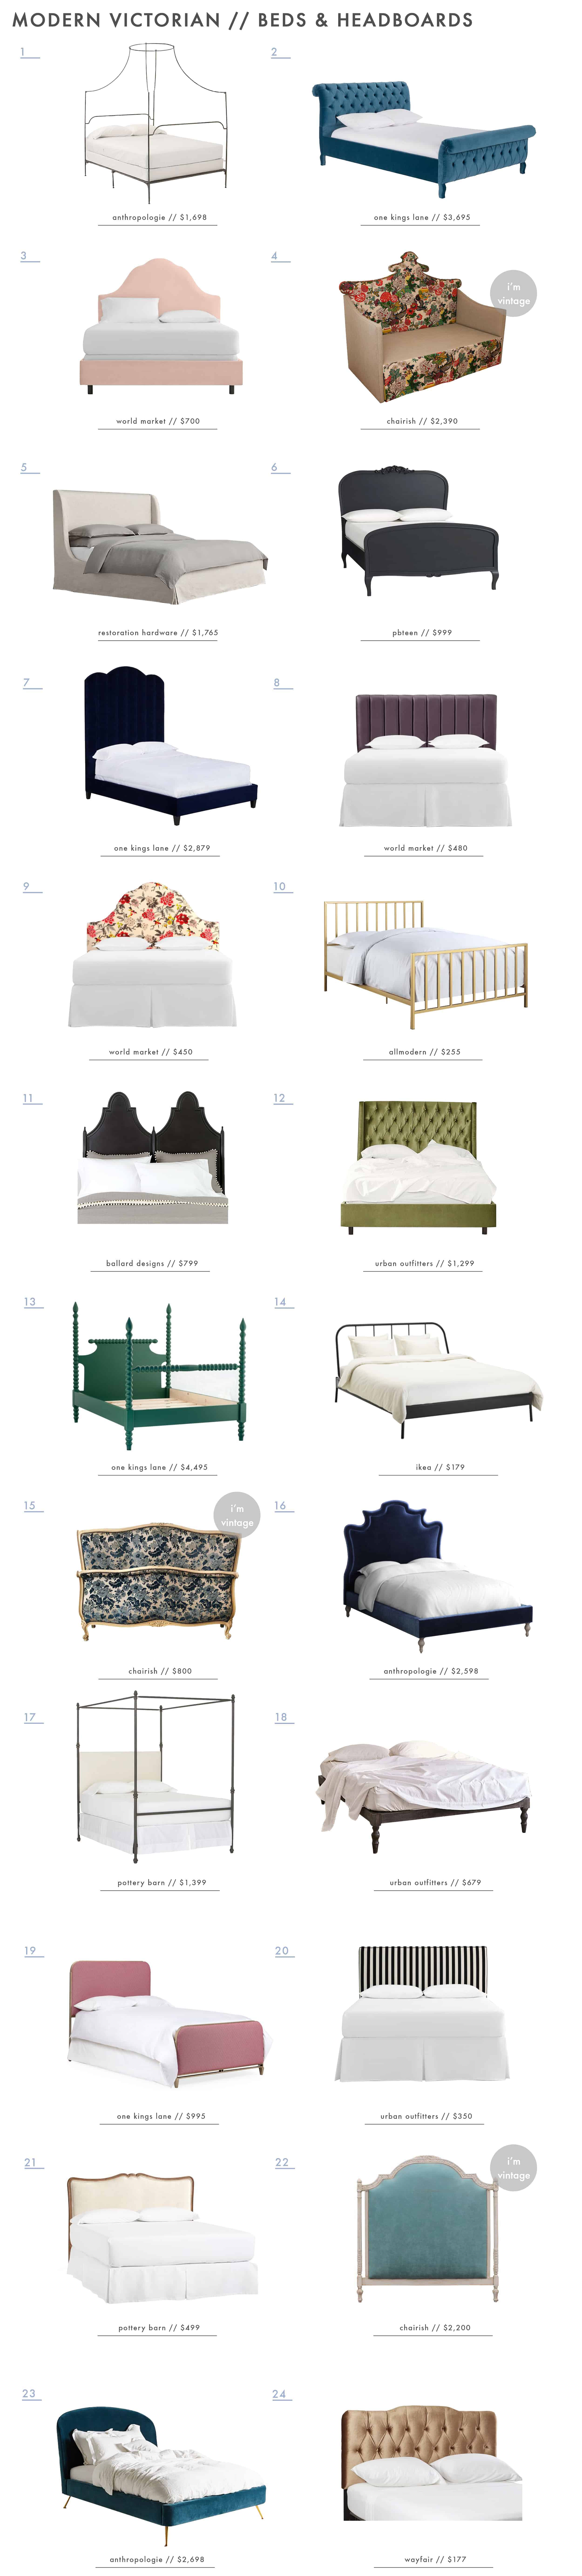 Emily Henderson Modern Victorian Trend Furniture Beds Headboards Roundup